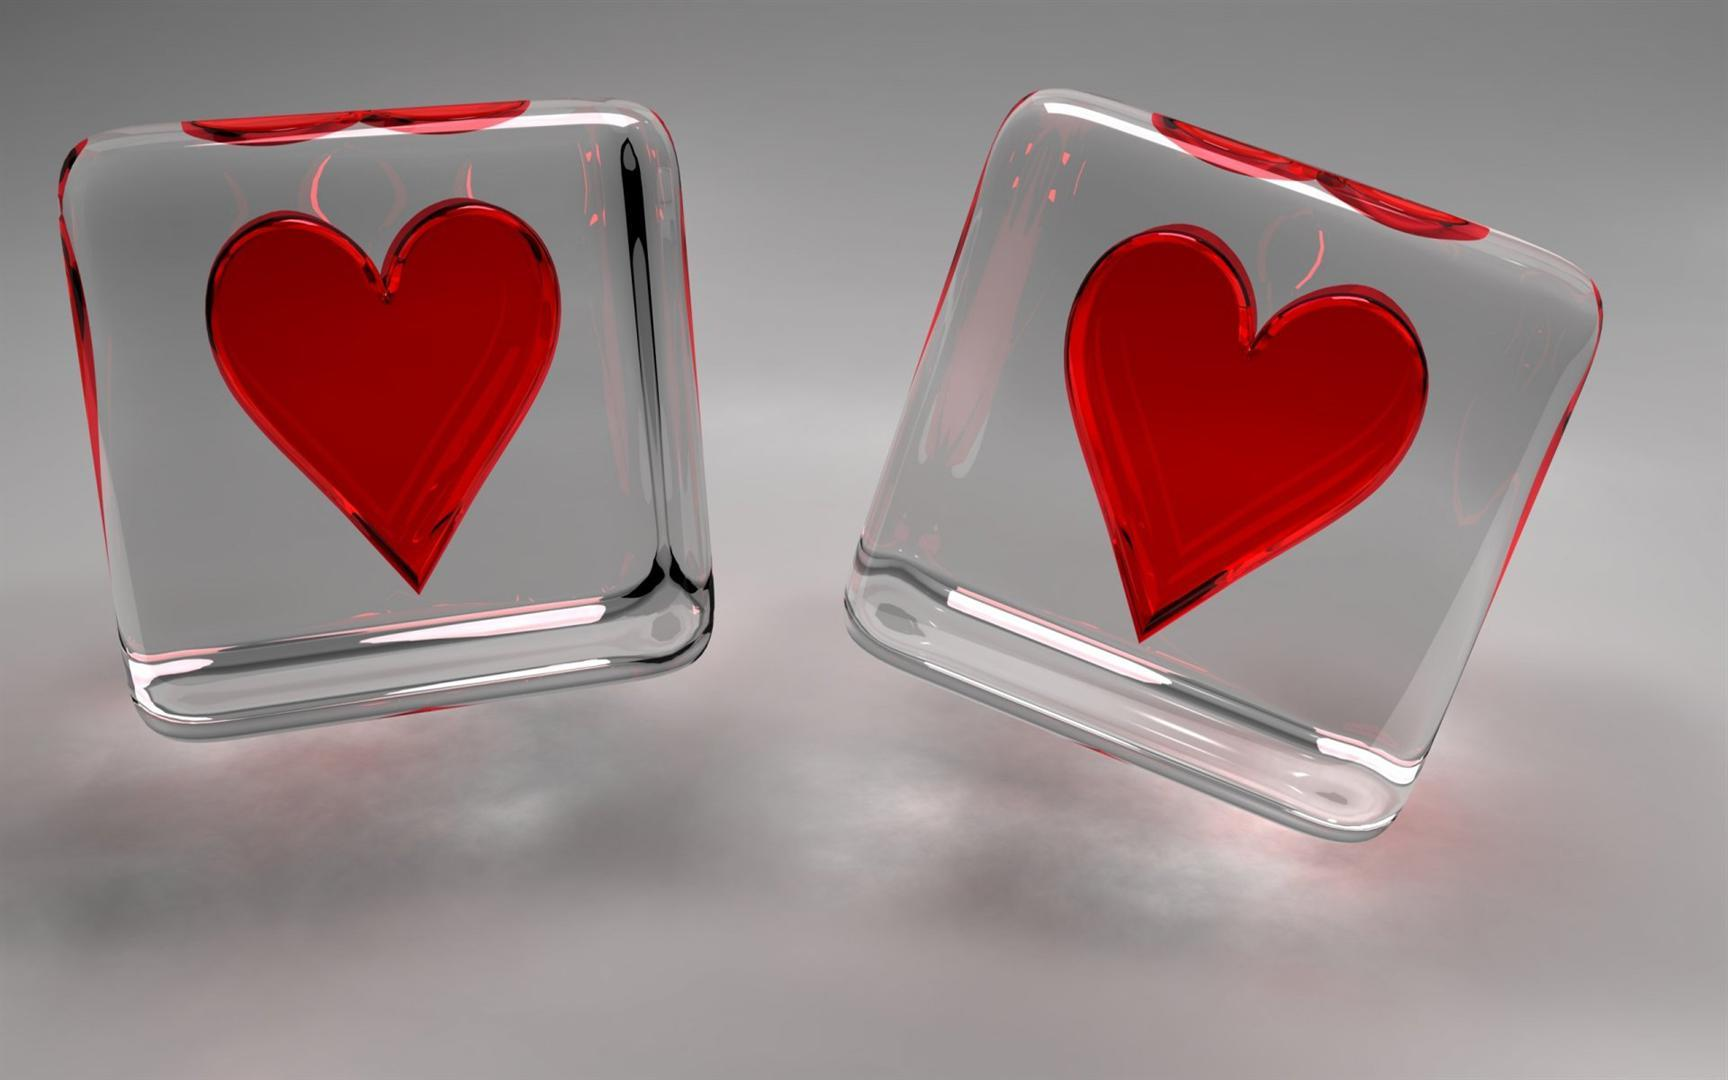 Love Desktop Wallpaper 3d : 3d Love Wallpapers - Wallpaper cave